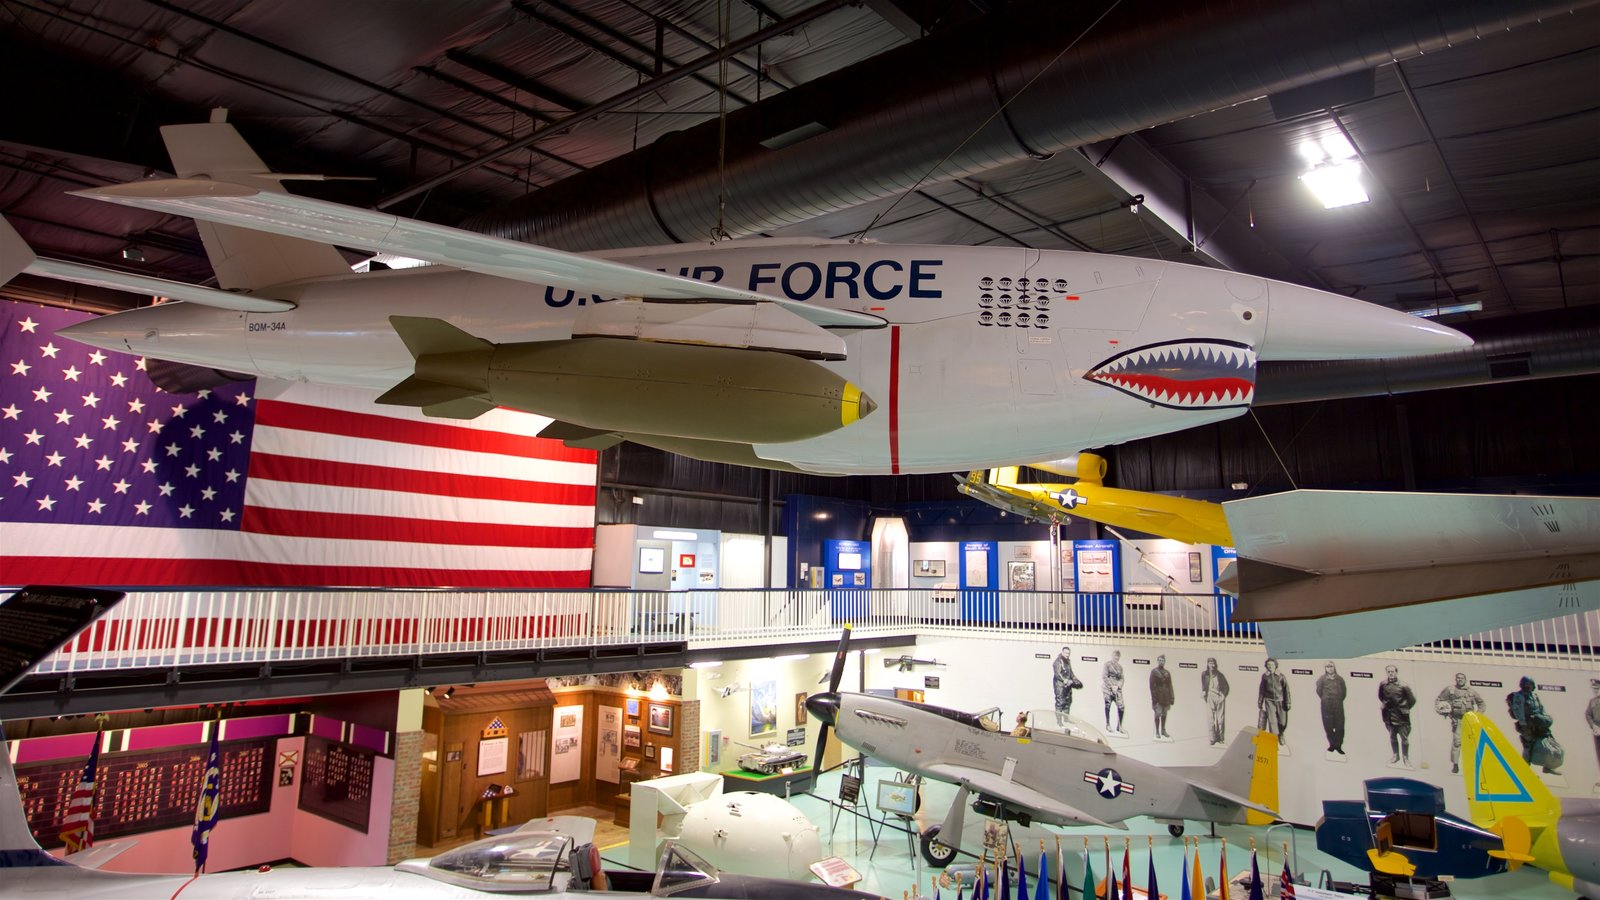 Air Force Armament Museum featuring heritage elements, interior views and military items